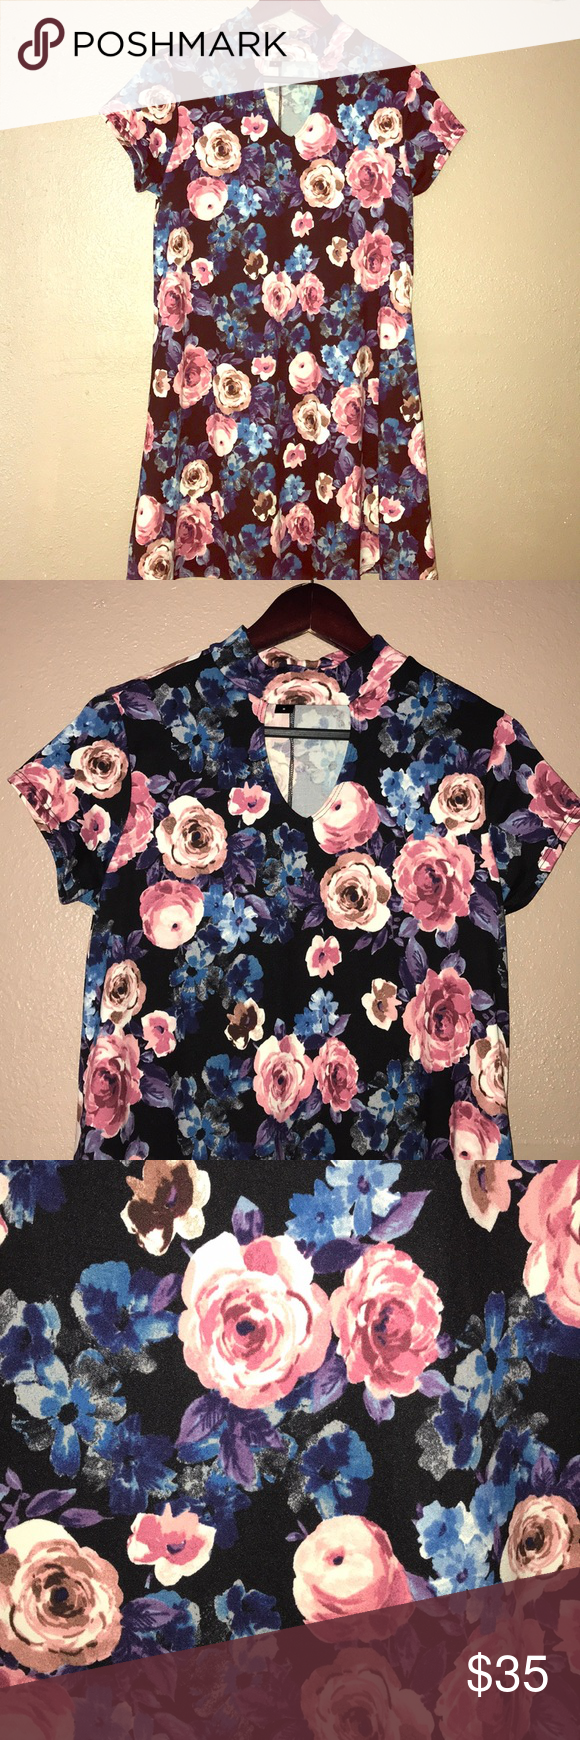 90s inspired couch floral choker babydoll dress M In great condition! Only worn once! Fits a size 6-8 and has a busy of 34-36. Joe Boxer Dresses Mini